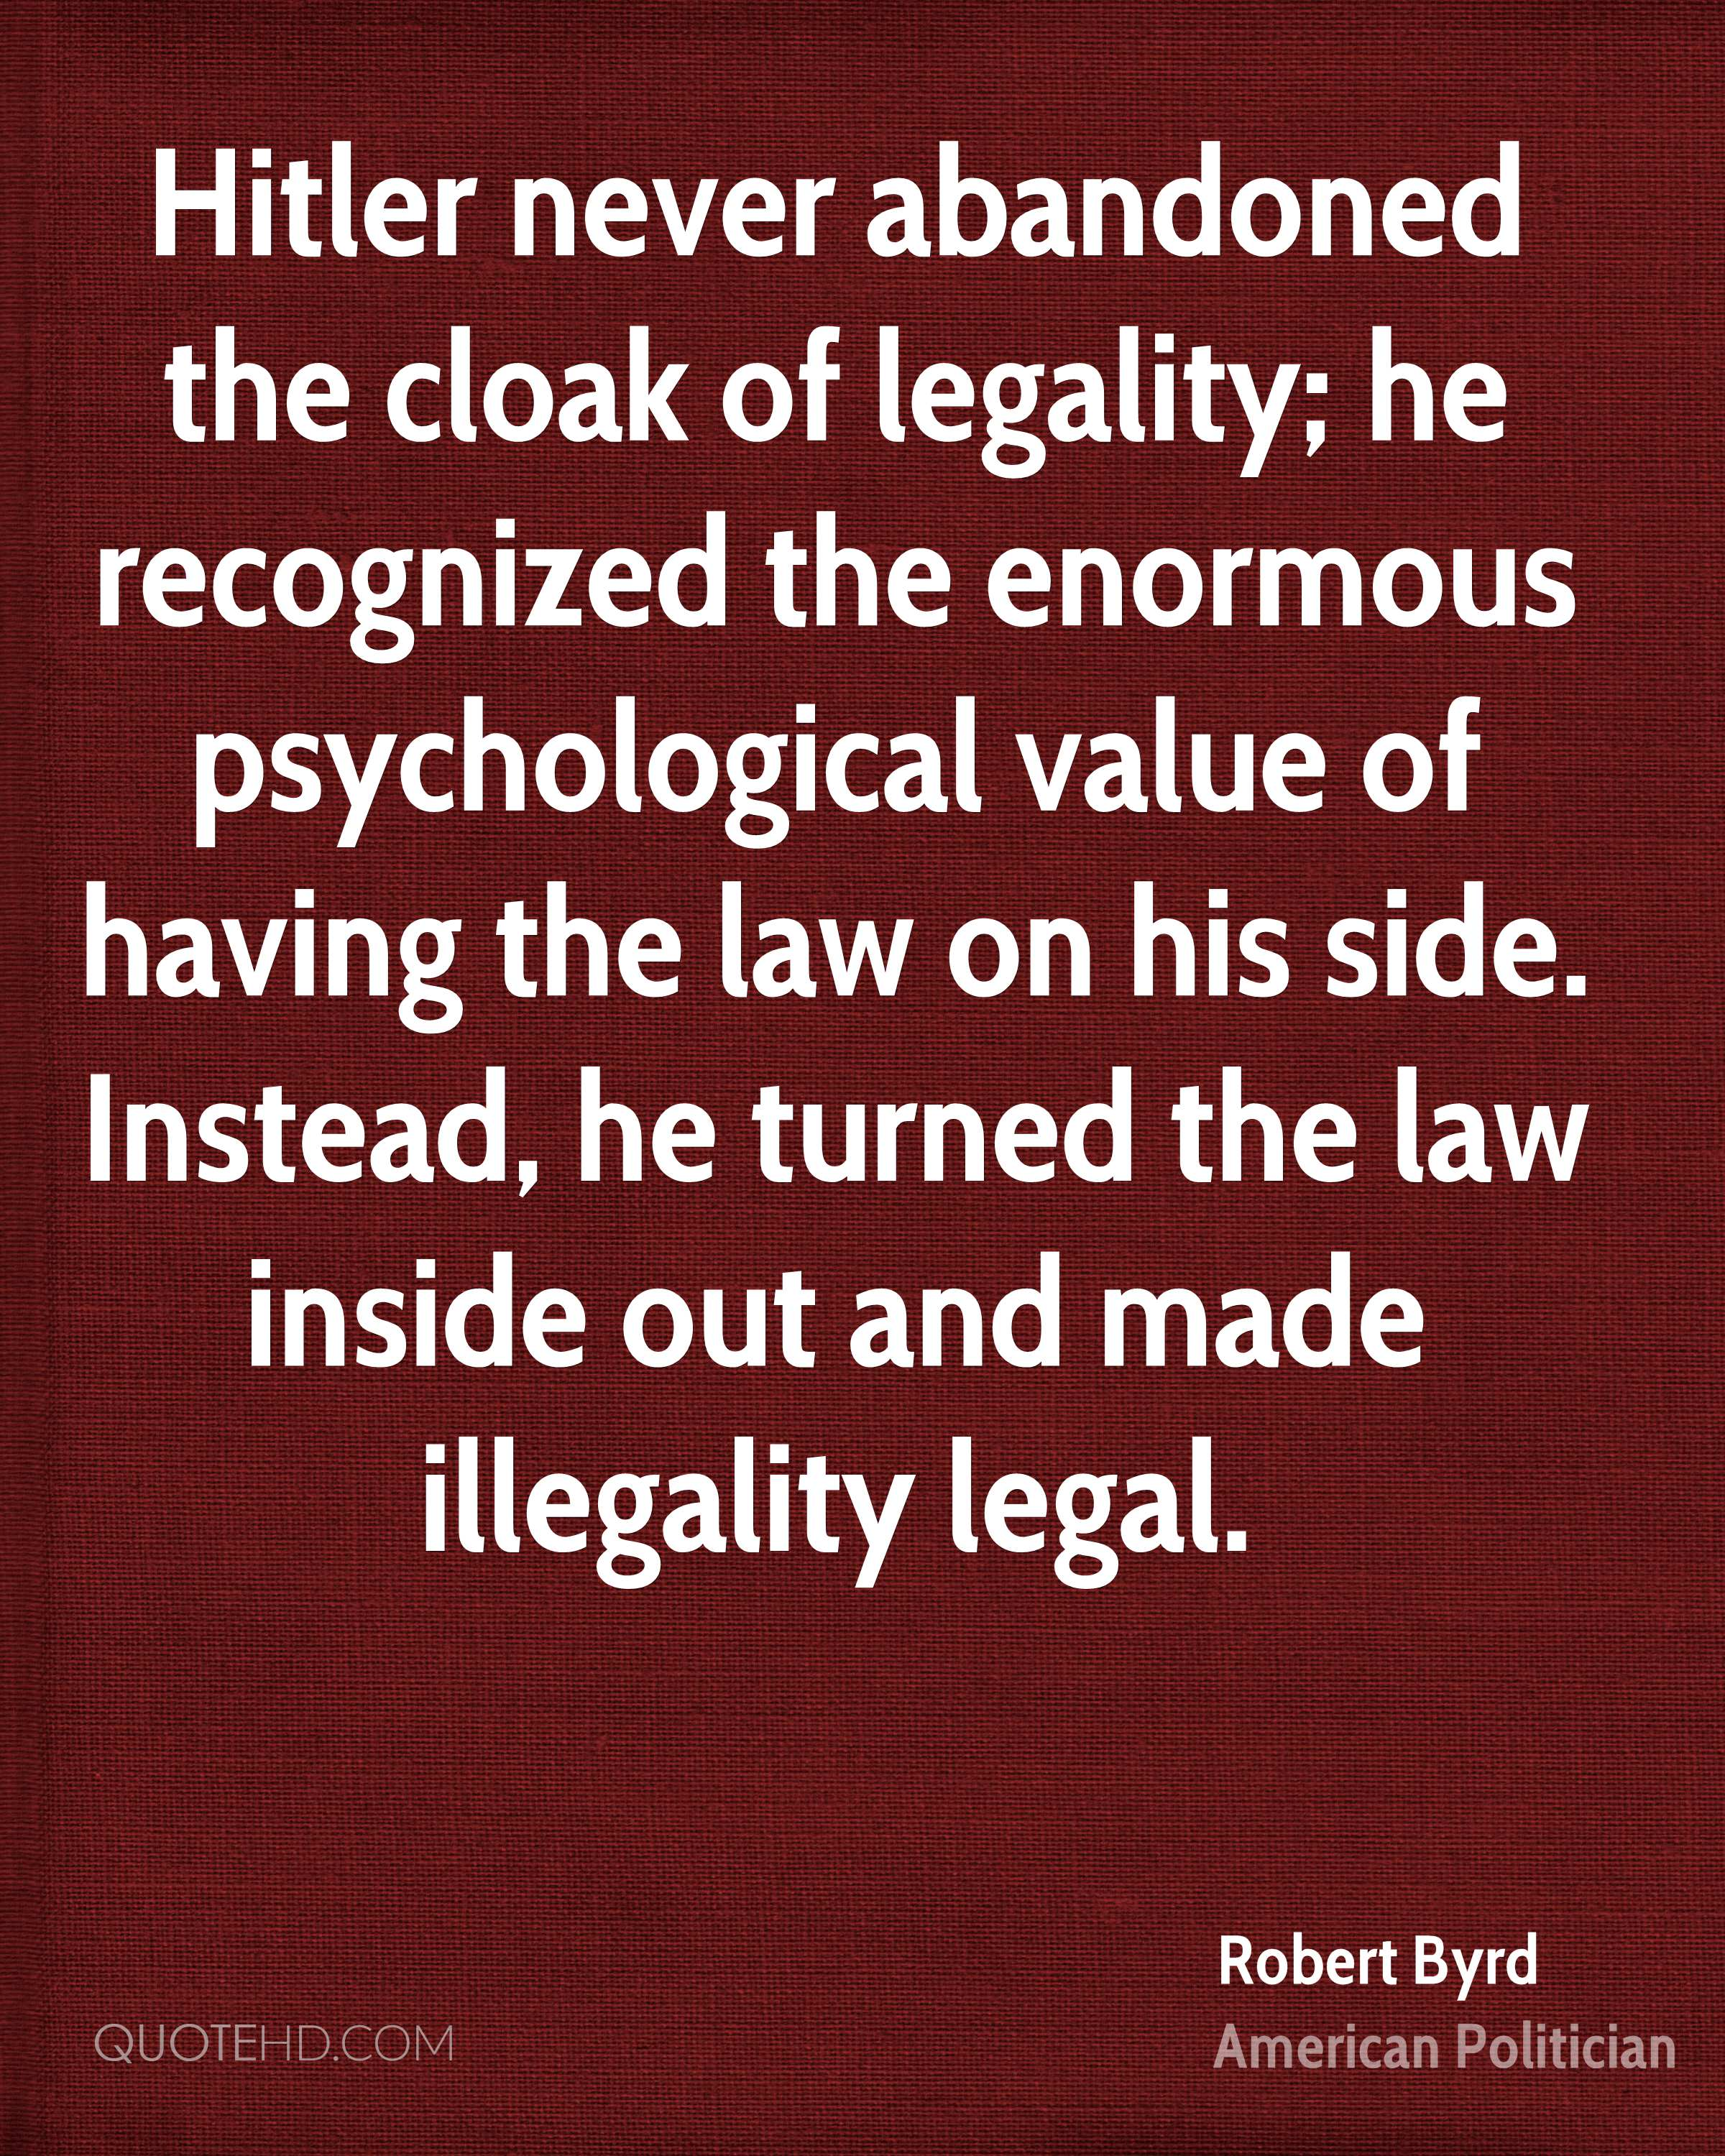 Hitler never abandoned the cloak of legality; he recognized the enormous psychological value of having the law on his side. Instead, he turned the law inside out and made illegality legal.